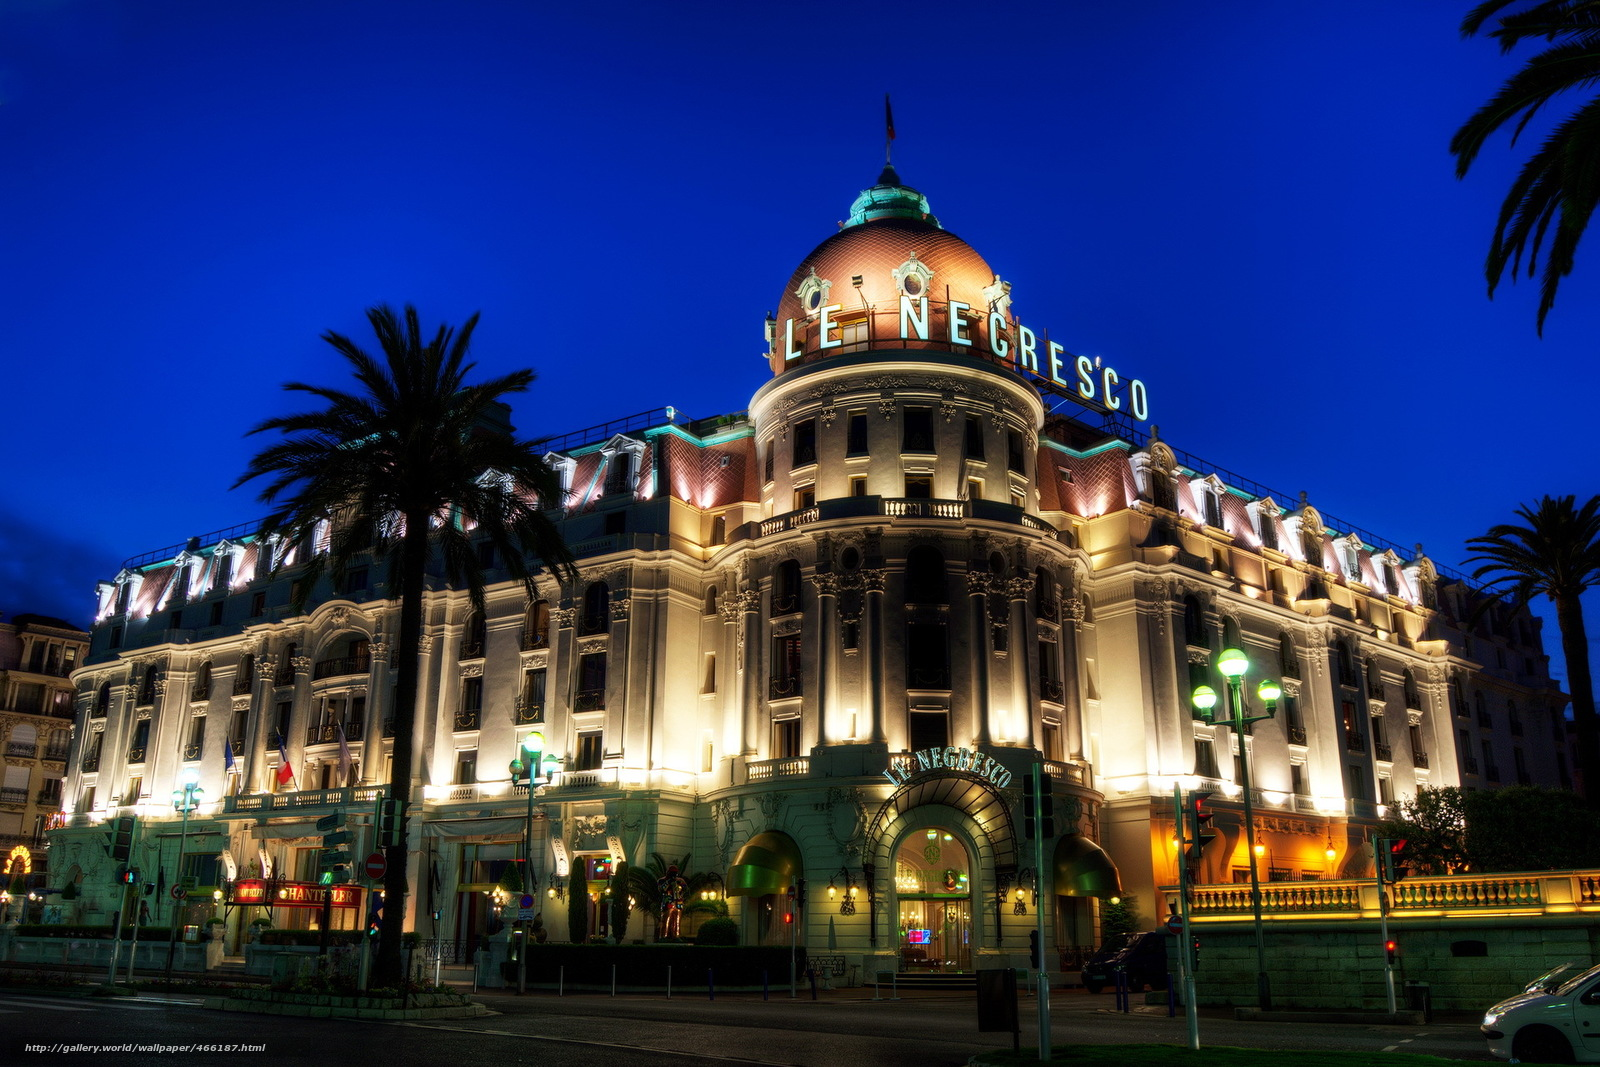 Download wallpaper france night city hotel free desktop for Hotel original france